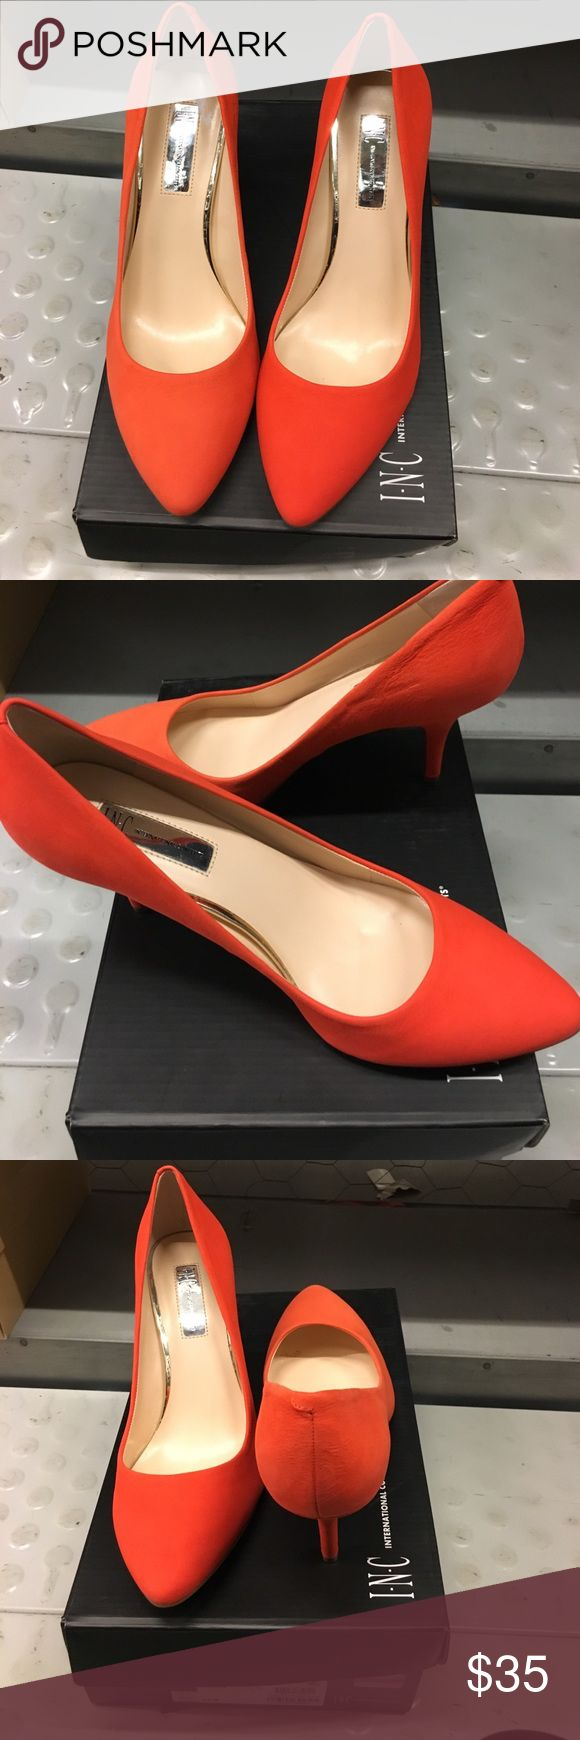 Inc heels, cute orange, size 9.5 Brand new, in box INC International Concepts Shoes Heels